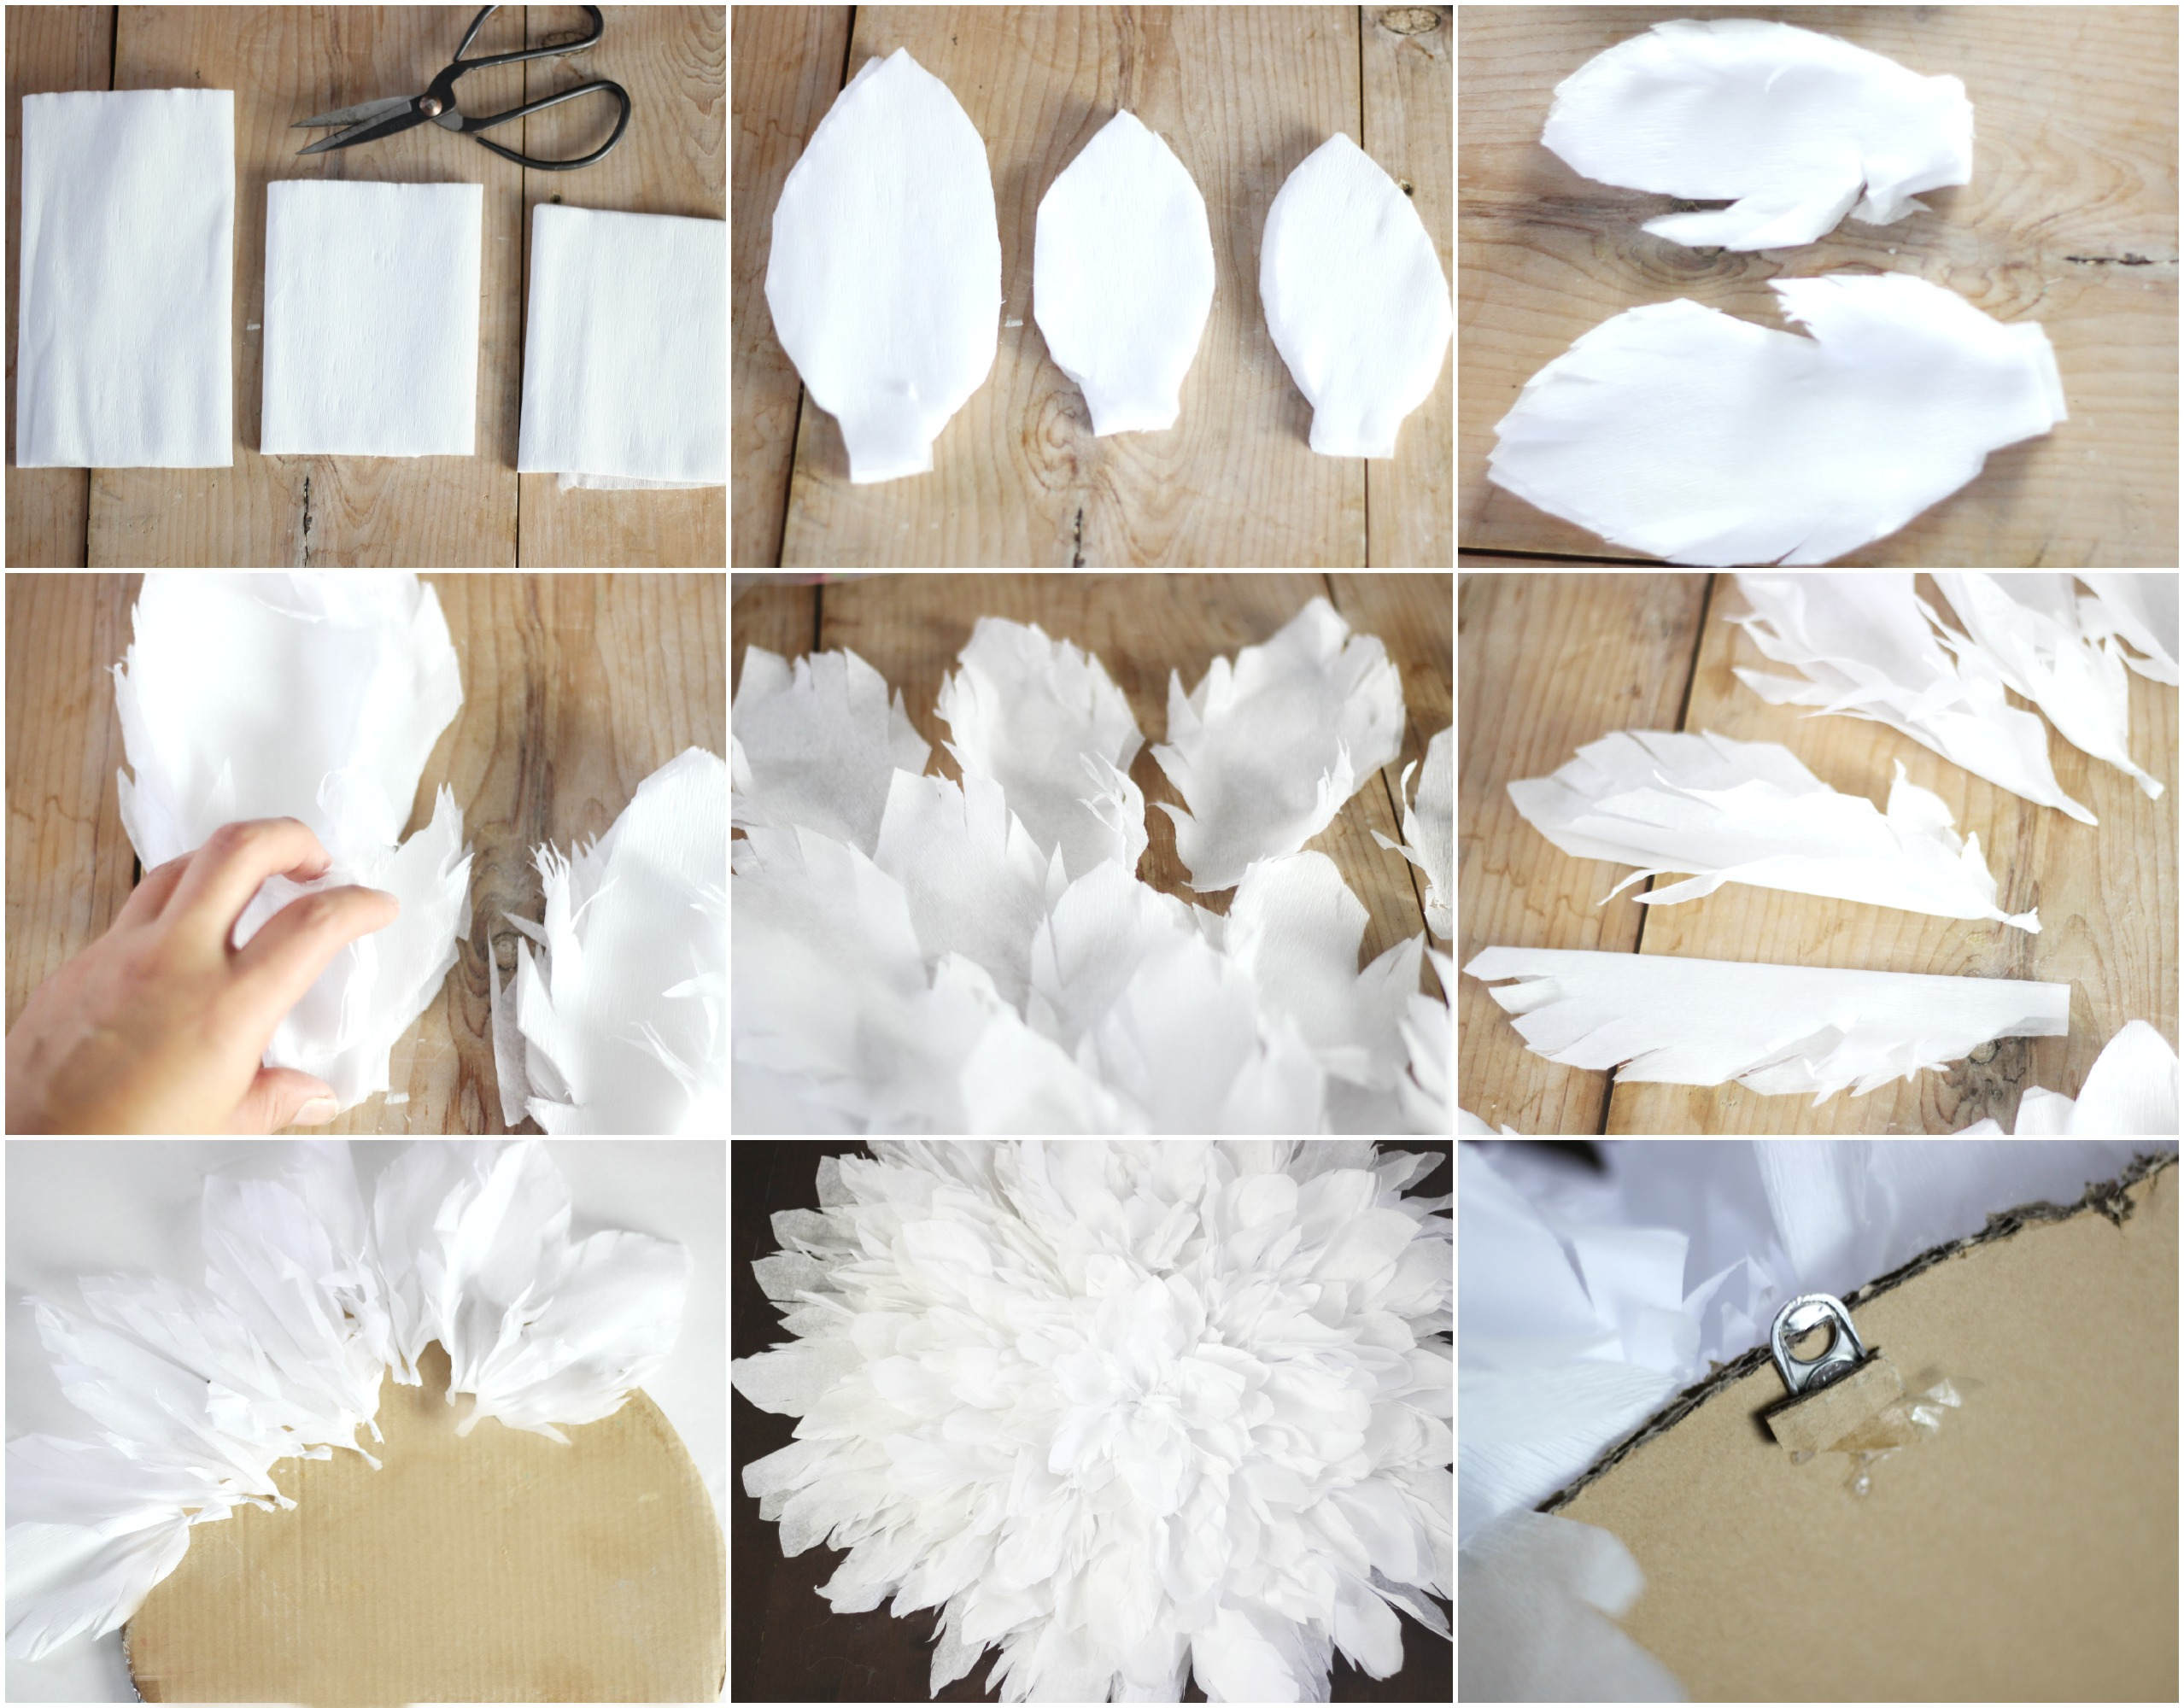 New Bedding And Crepe Paper Juju Hat Tutorial